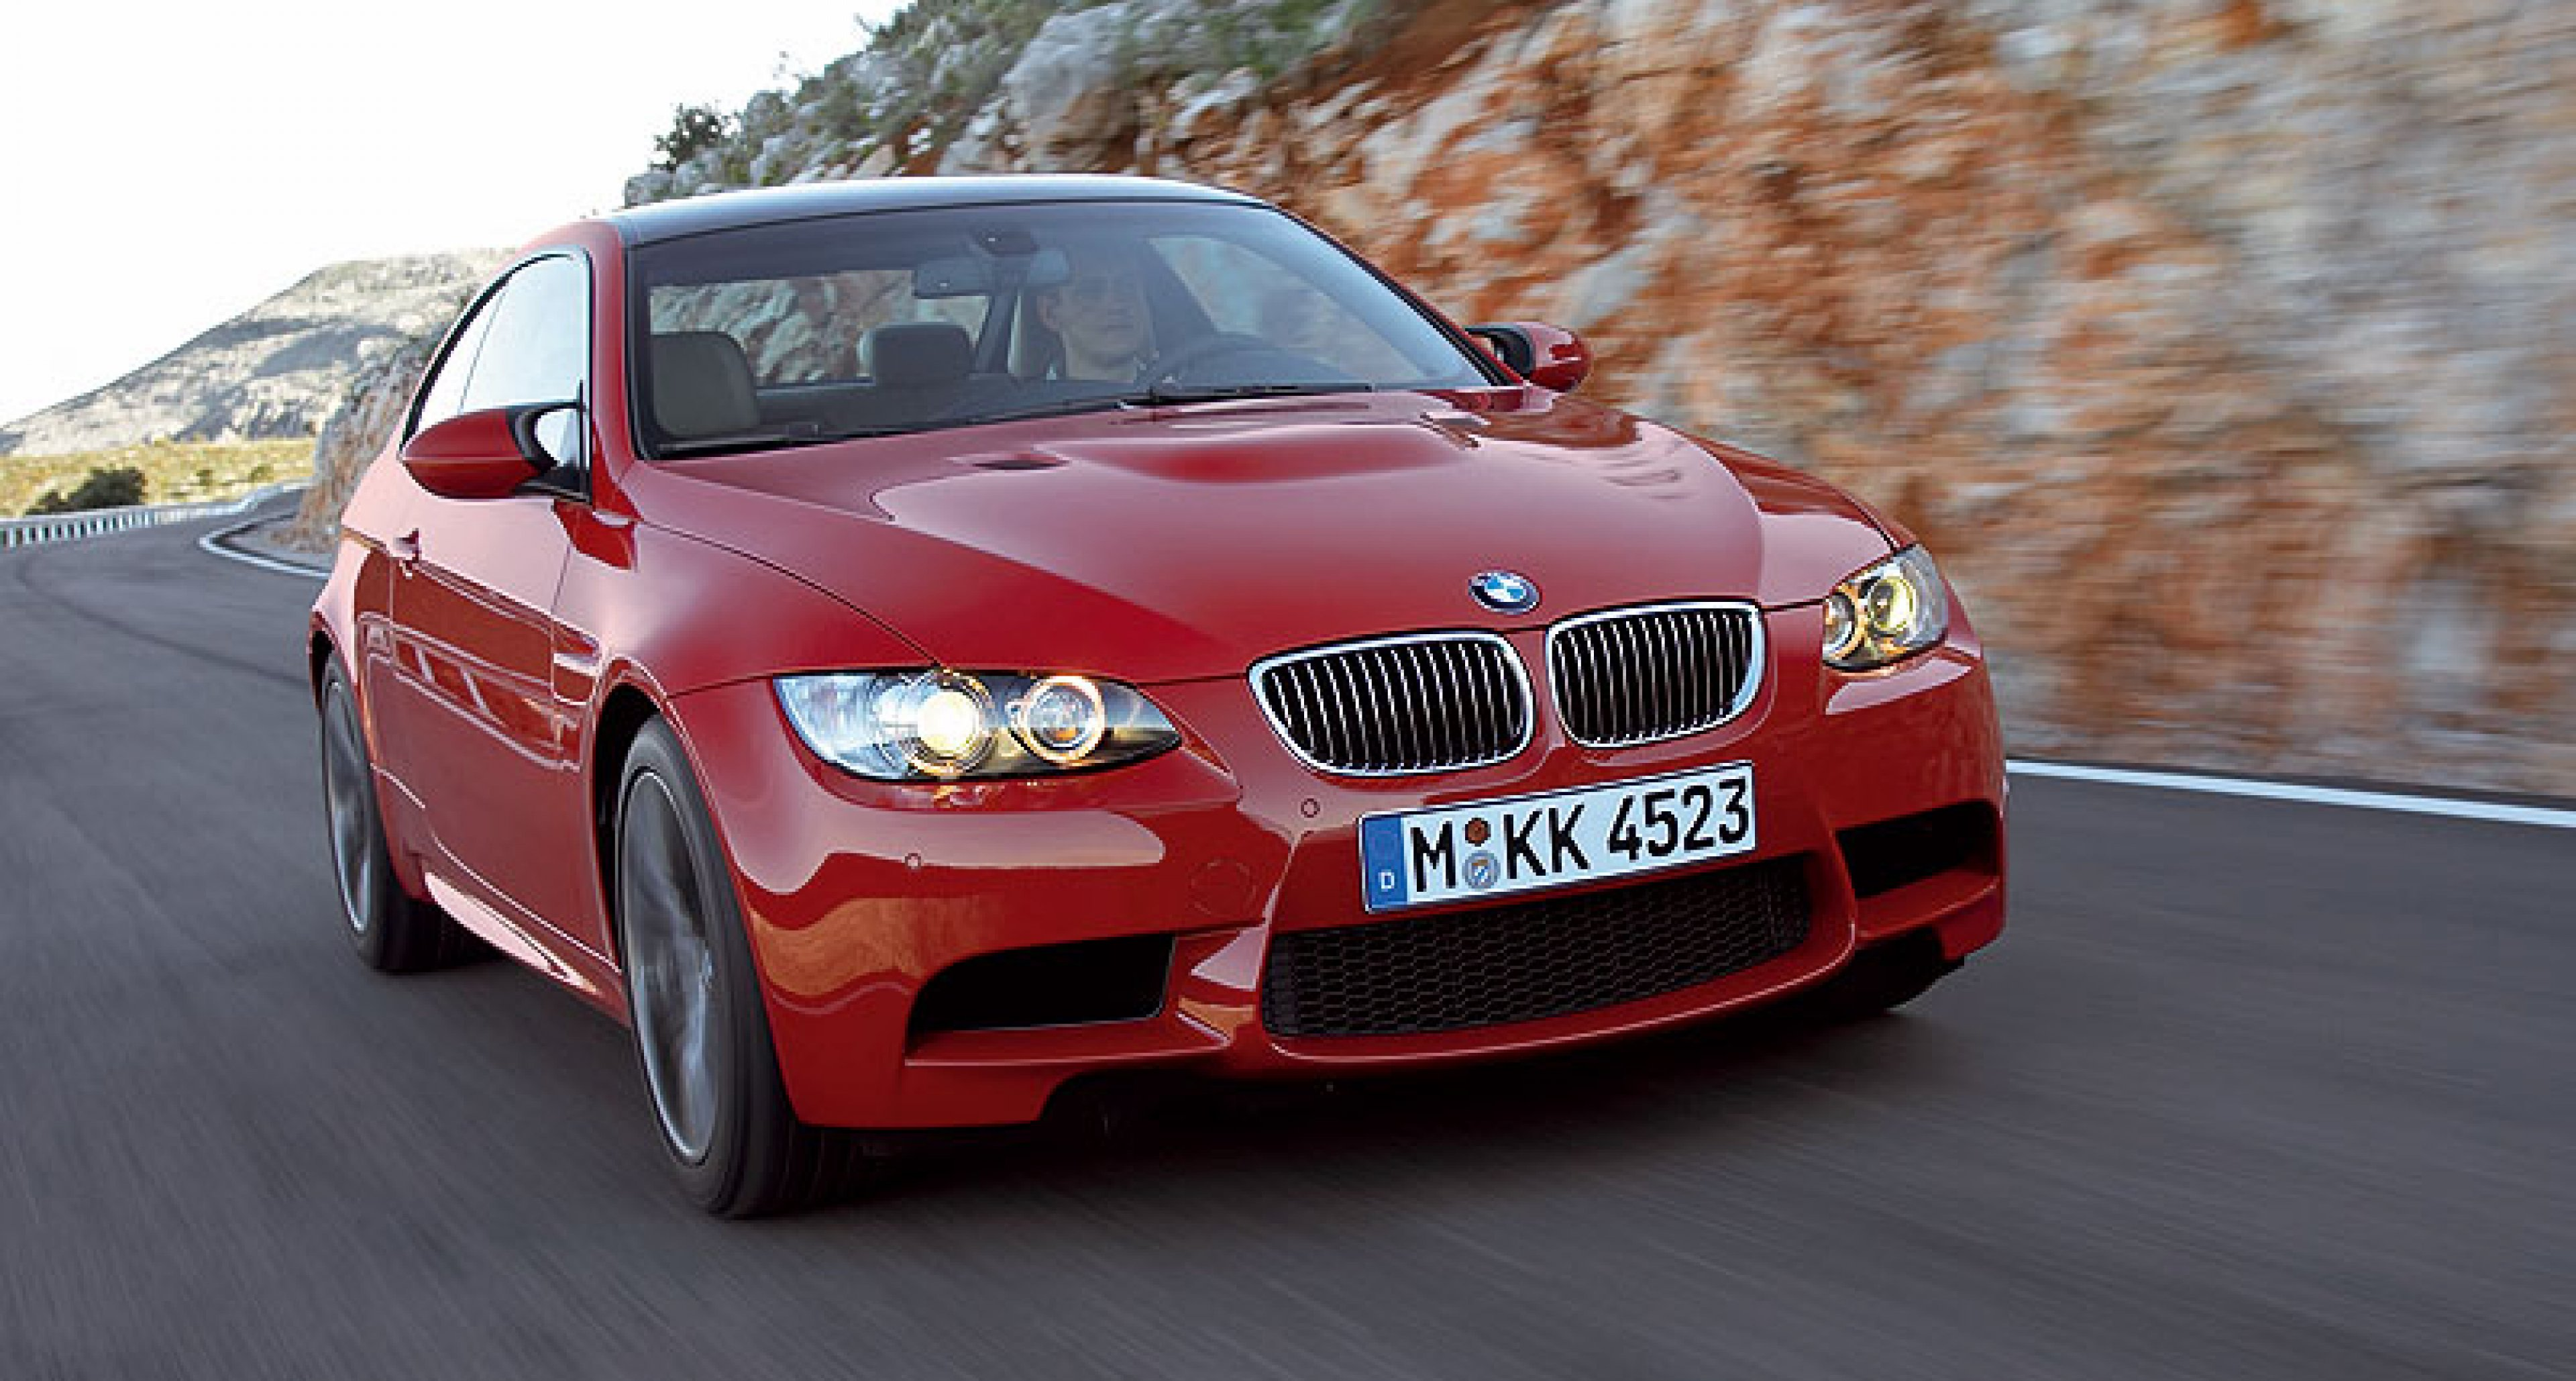 The new BMW M3